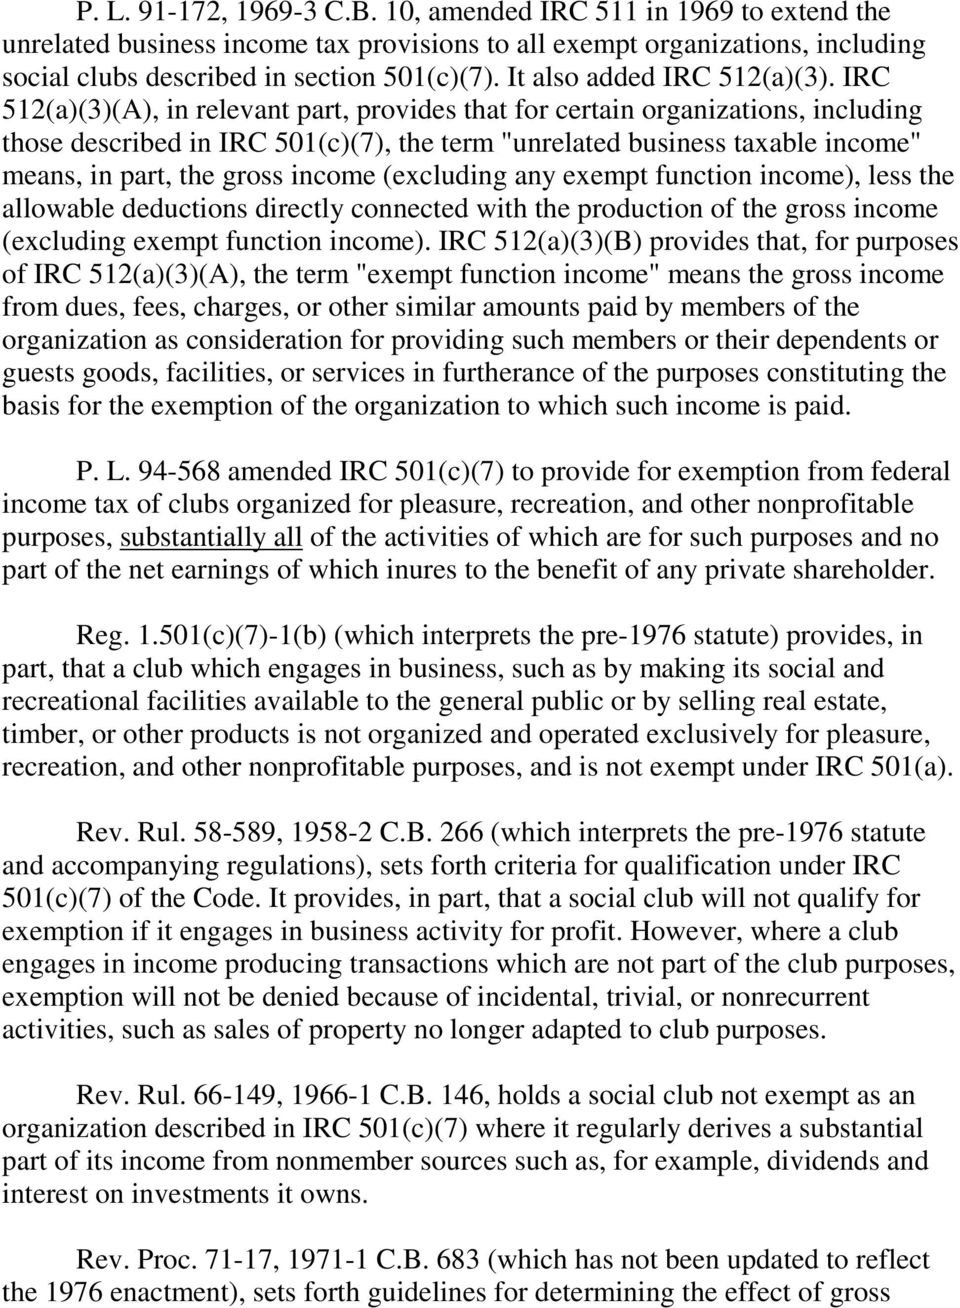 "IRC 512(a)(3)(A), in relevant part, provides that for certain organizations, including those described in IRC 501(c)(7), the term ""unrelated business taxable income"" means, in part, the gross income"